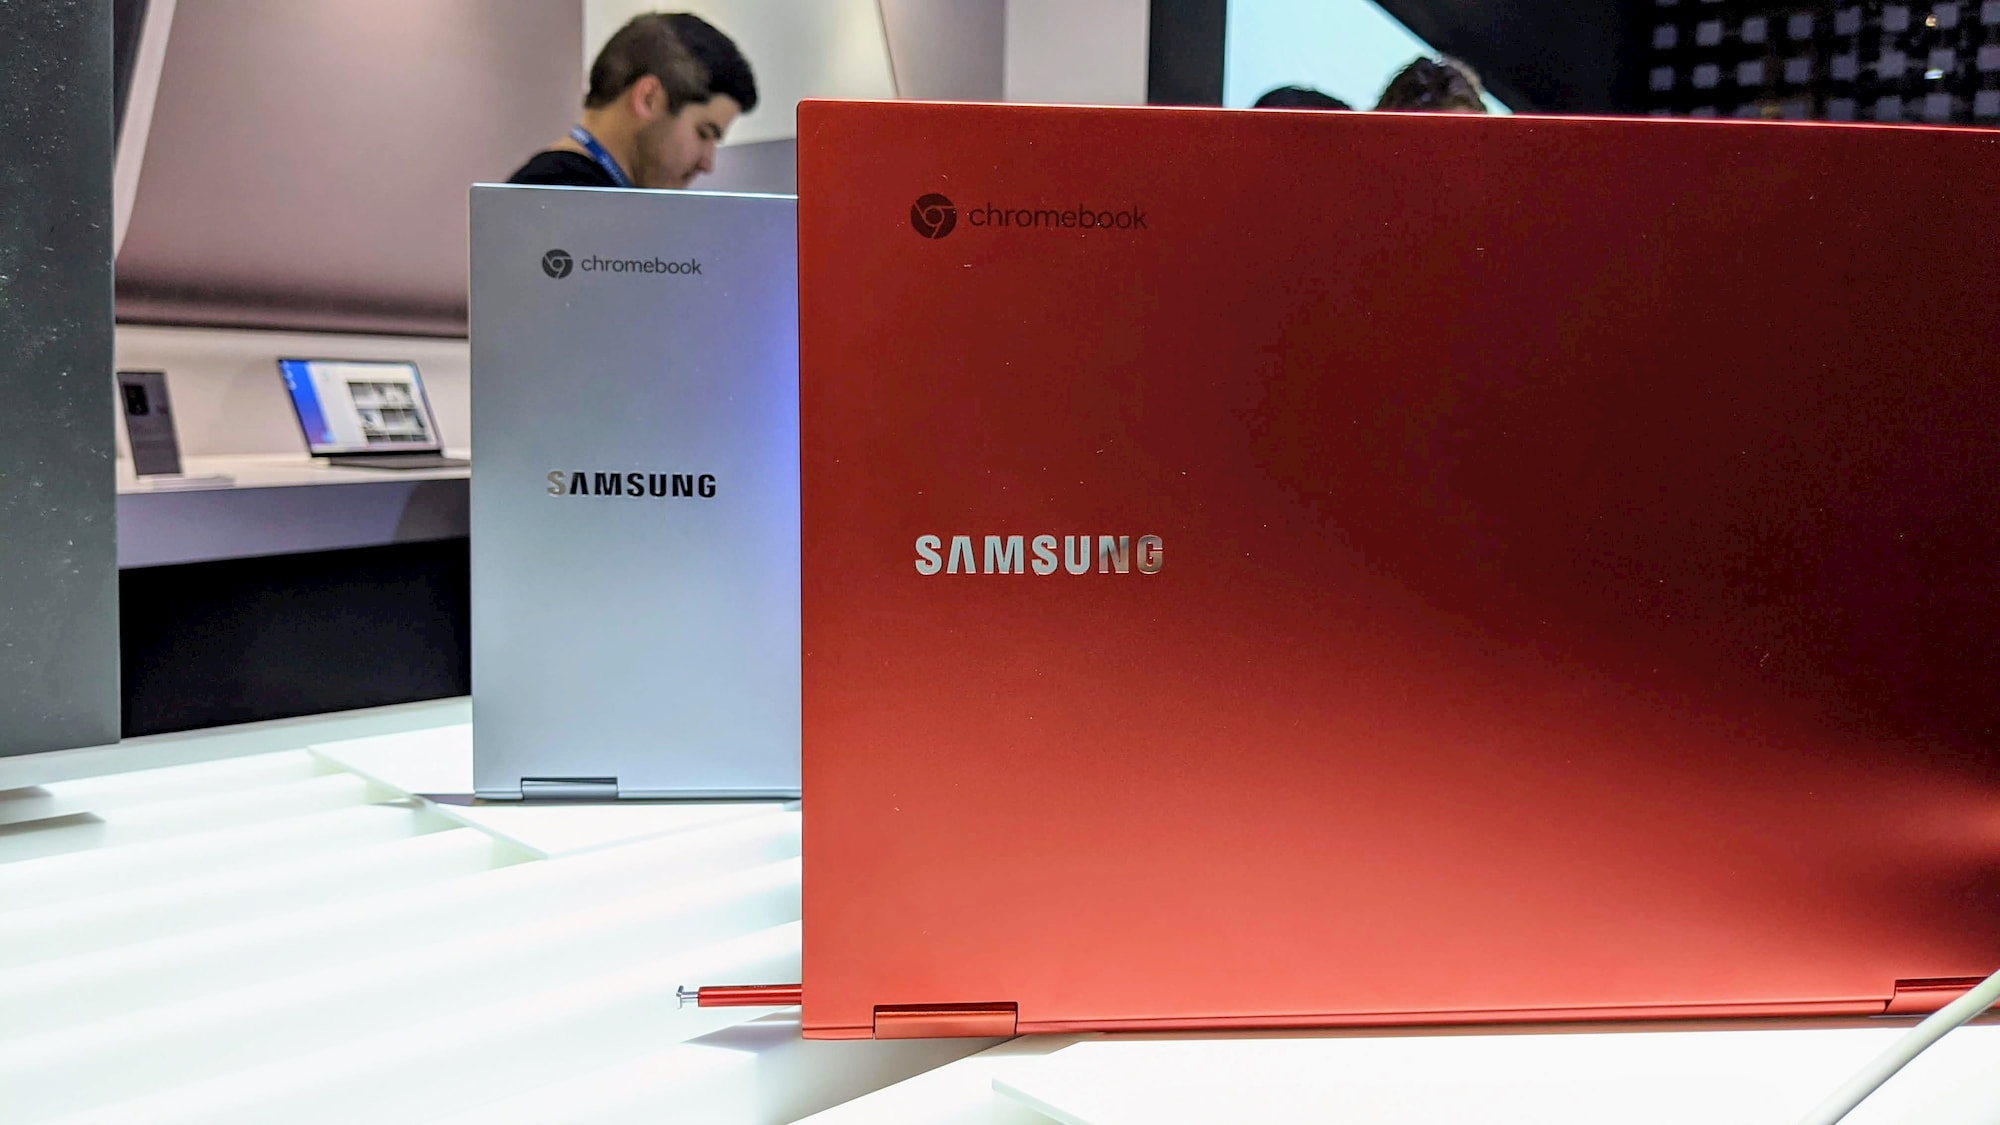 Save up to $320 on the Galaxy Chromebook and more deals from Samsung